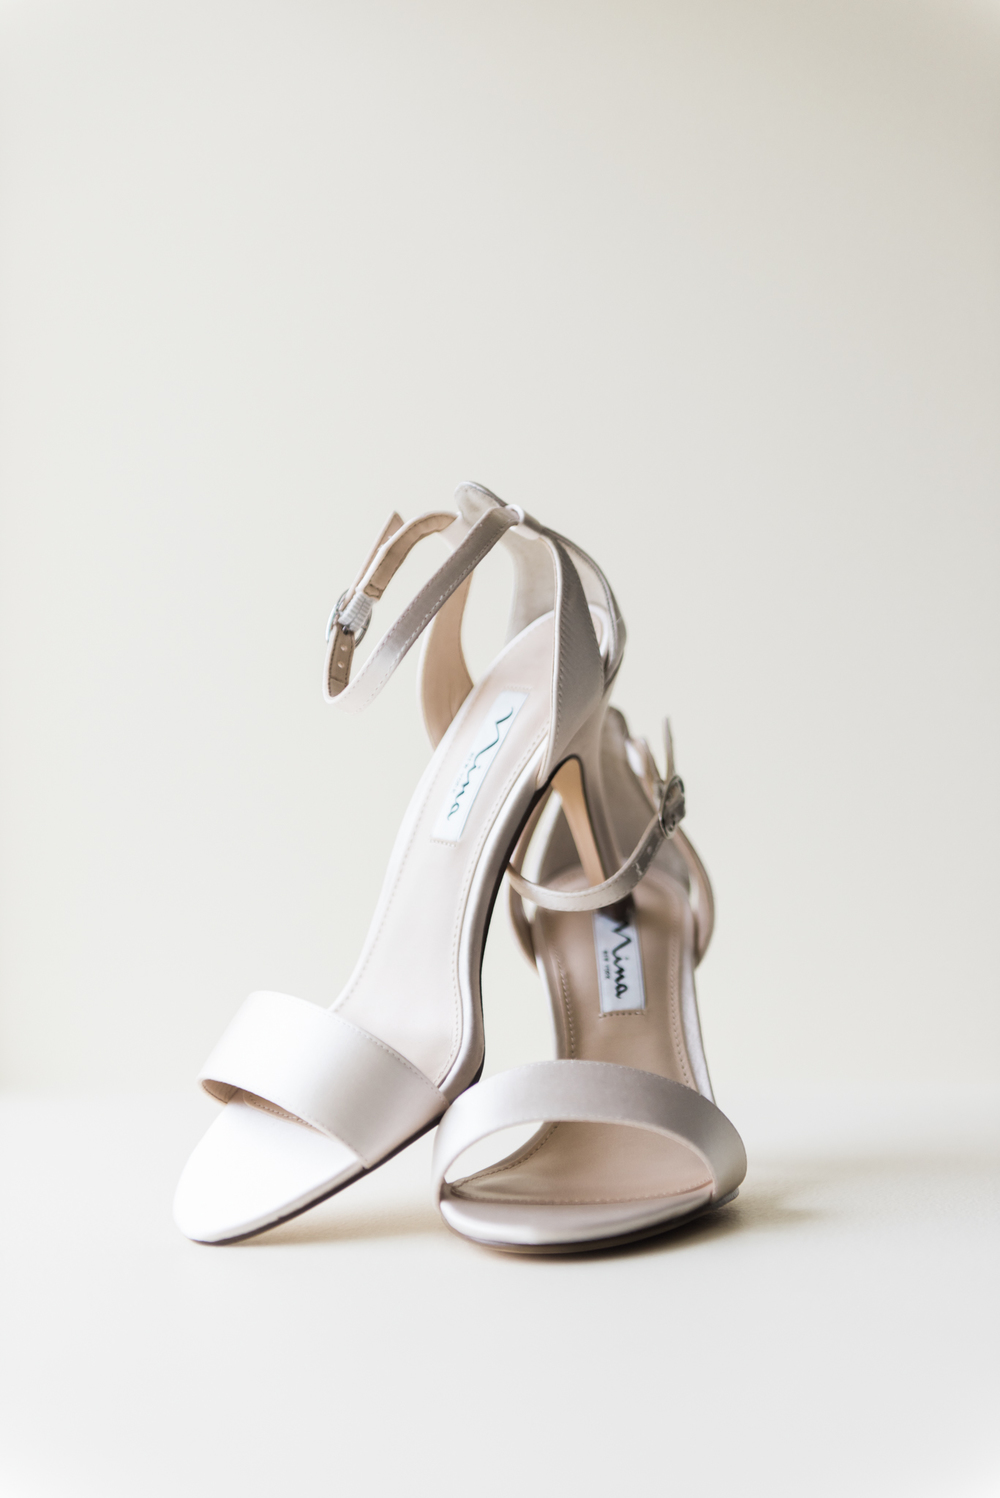 wedding shoes of bride